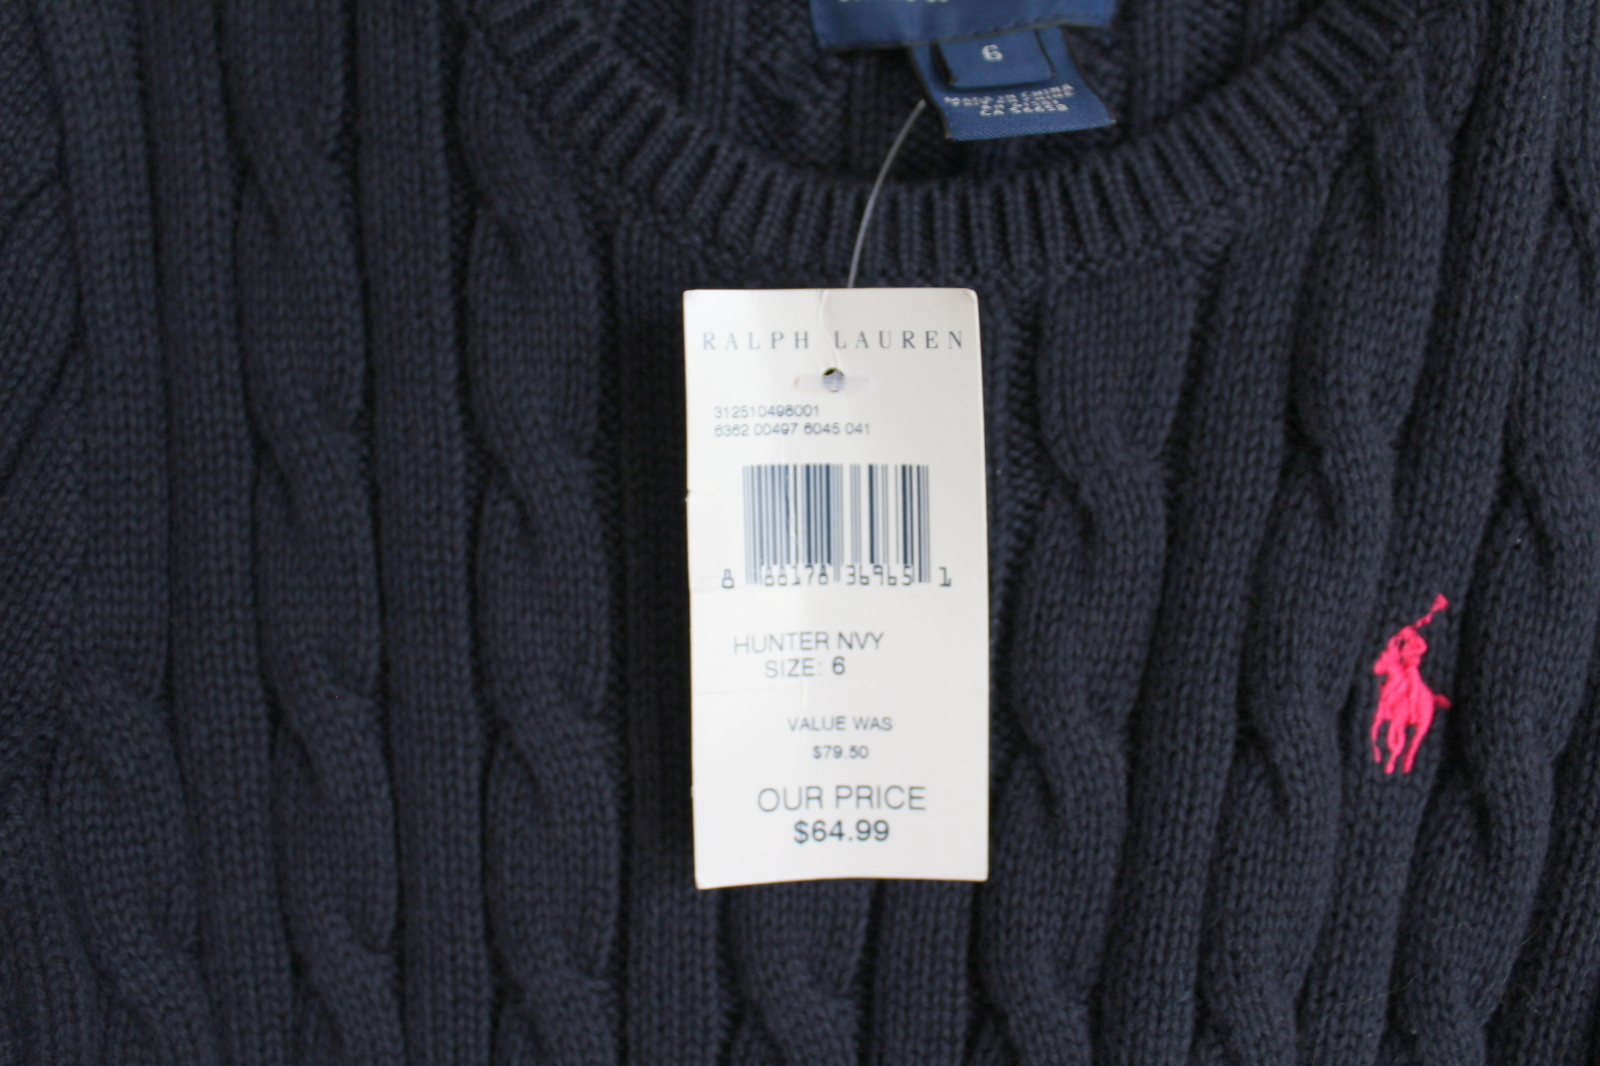 Short Sleeve Cable Knit Sweater Choice Image - Craft Design Ideas